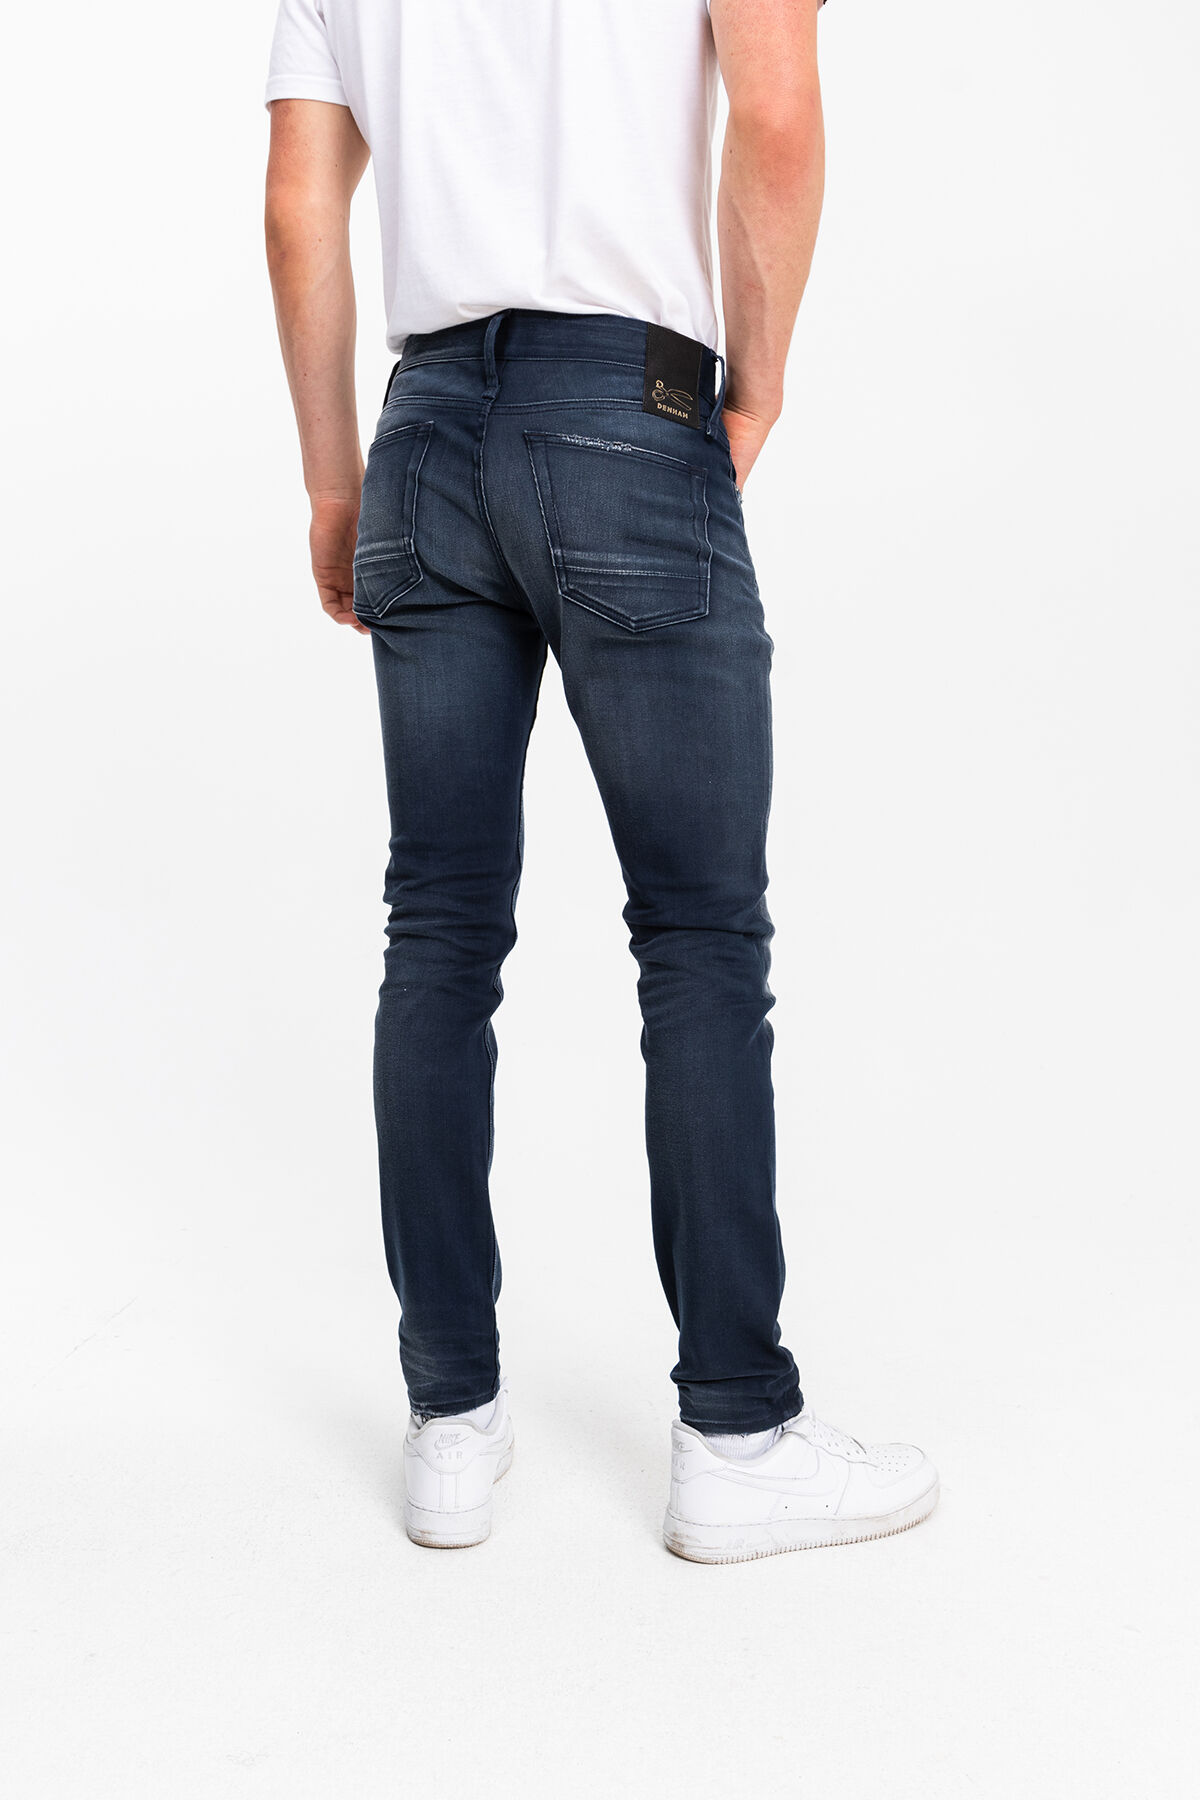 BOLT Left-hand Cotton & Modal Denim - Skinny Fit